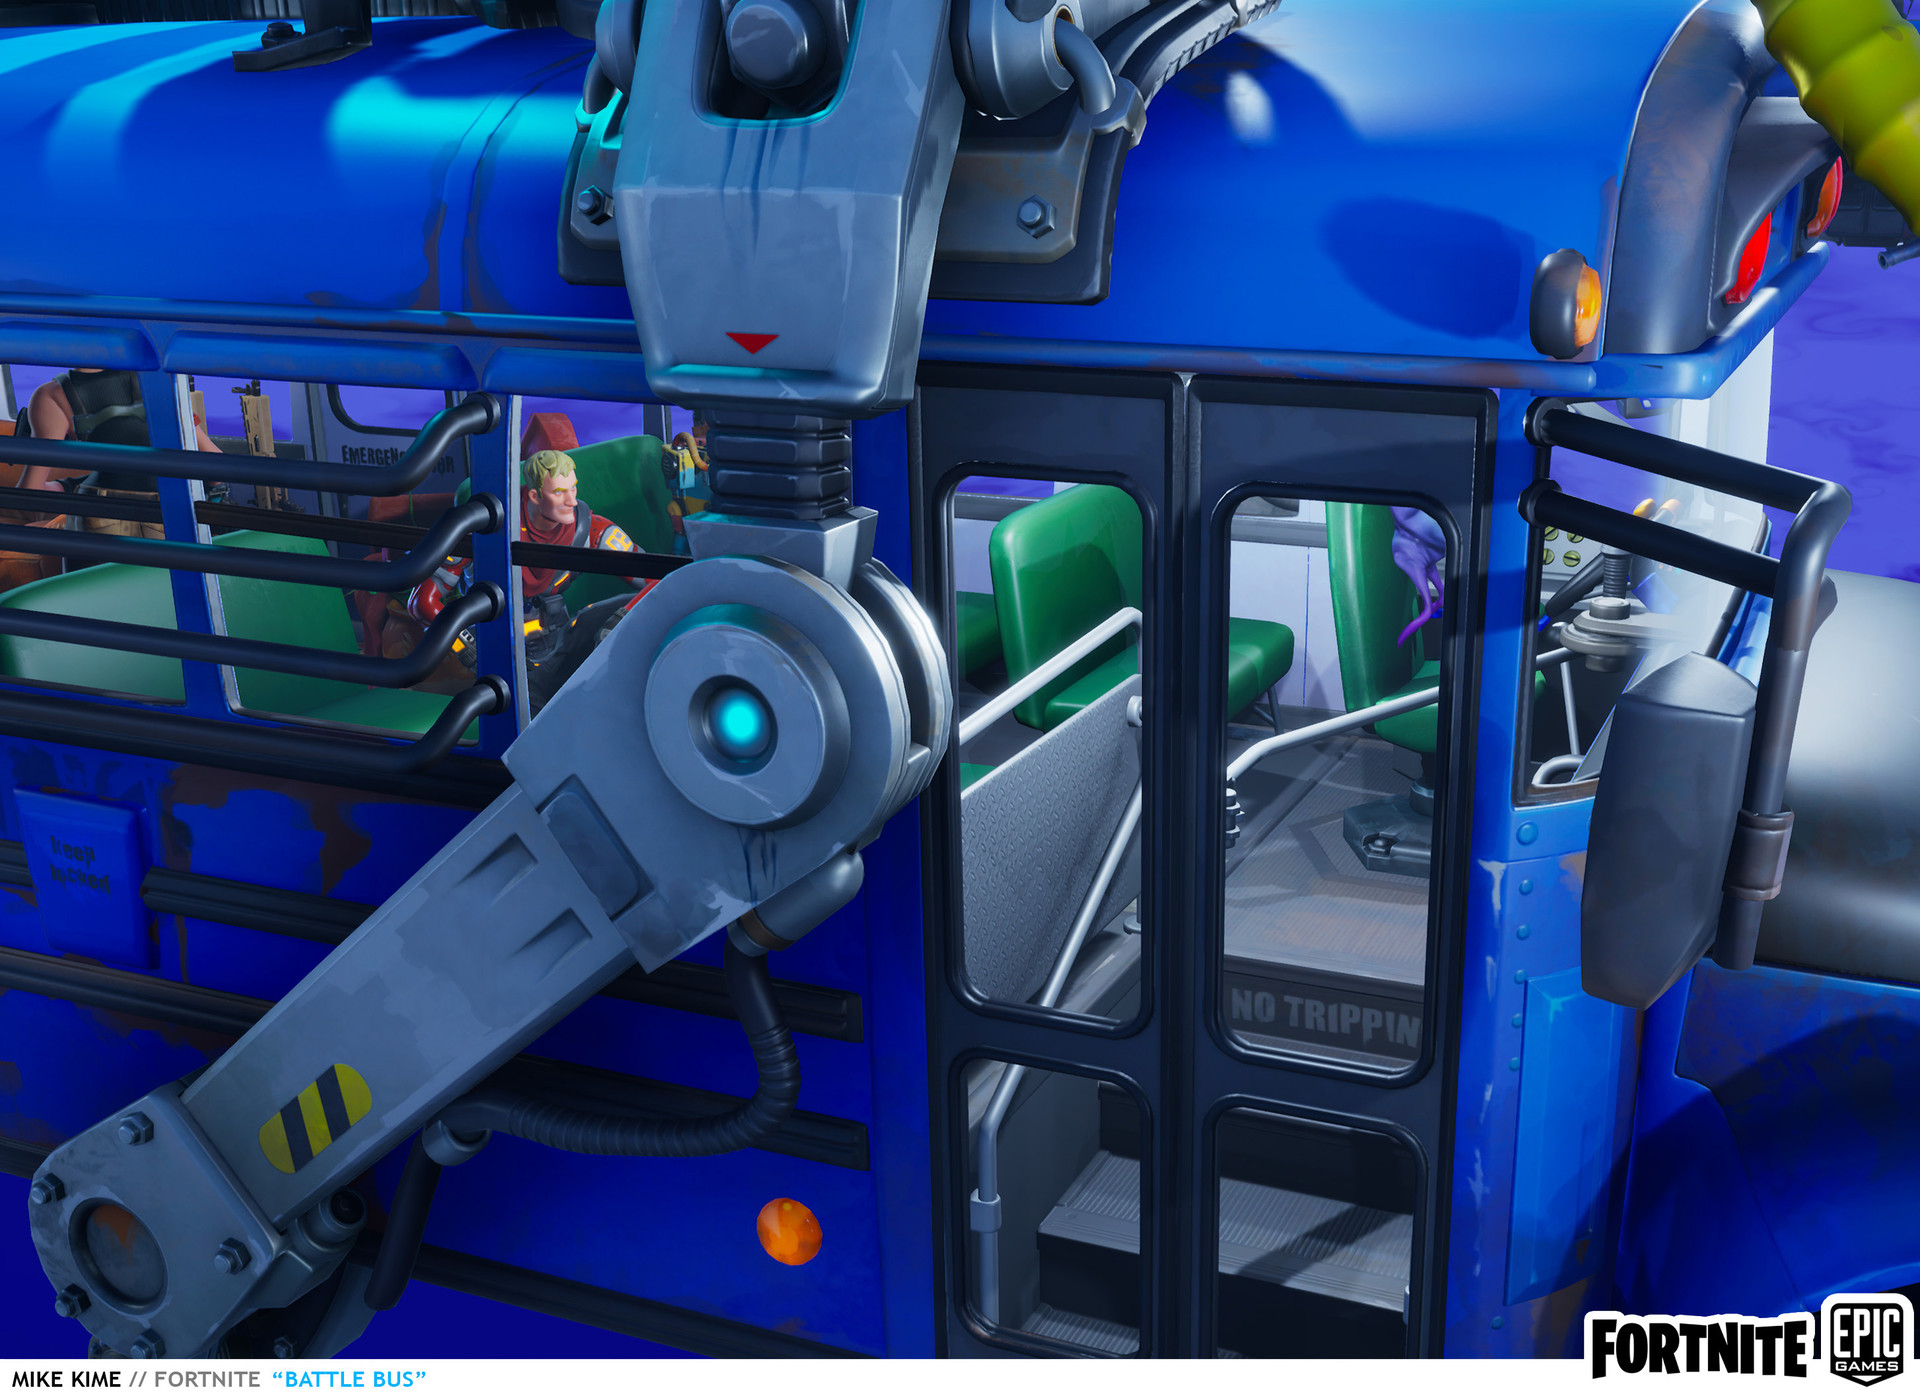 Mike kime fortnite battle bus notripping